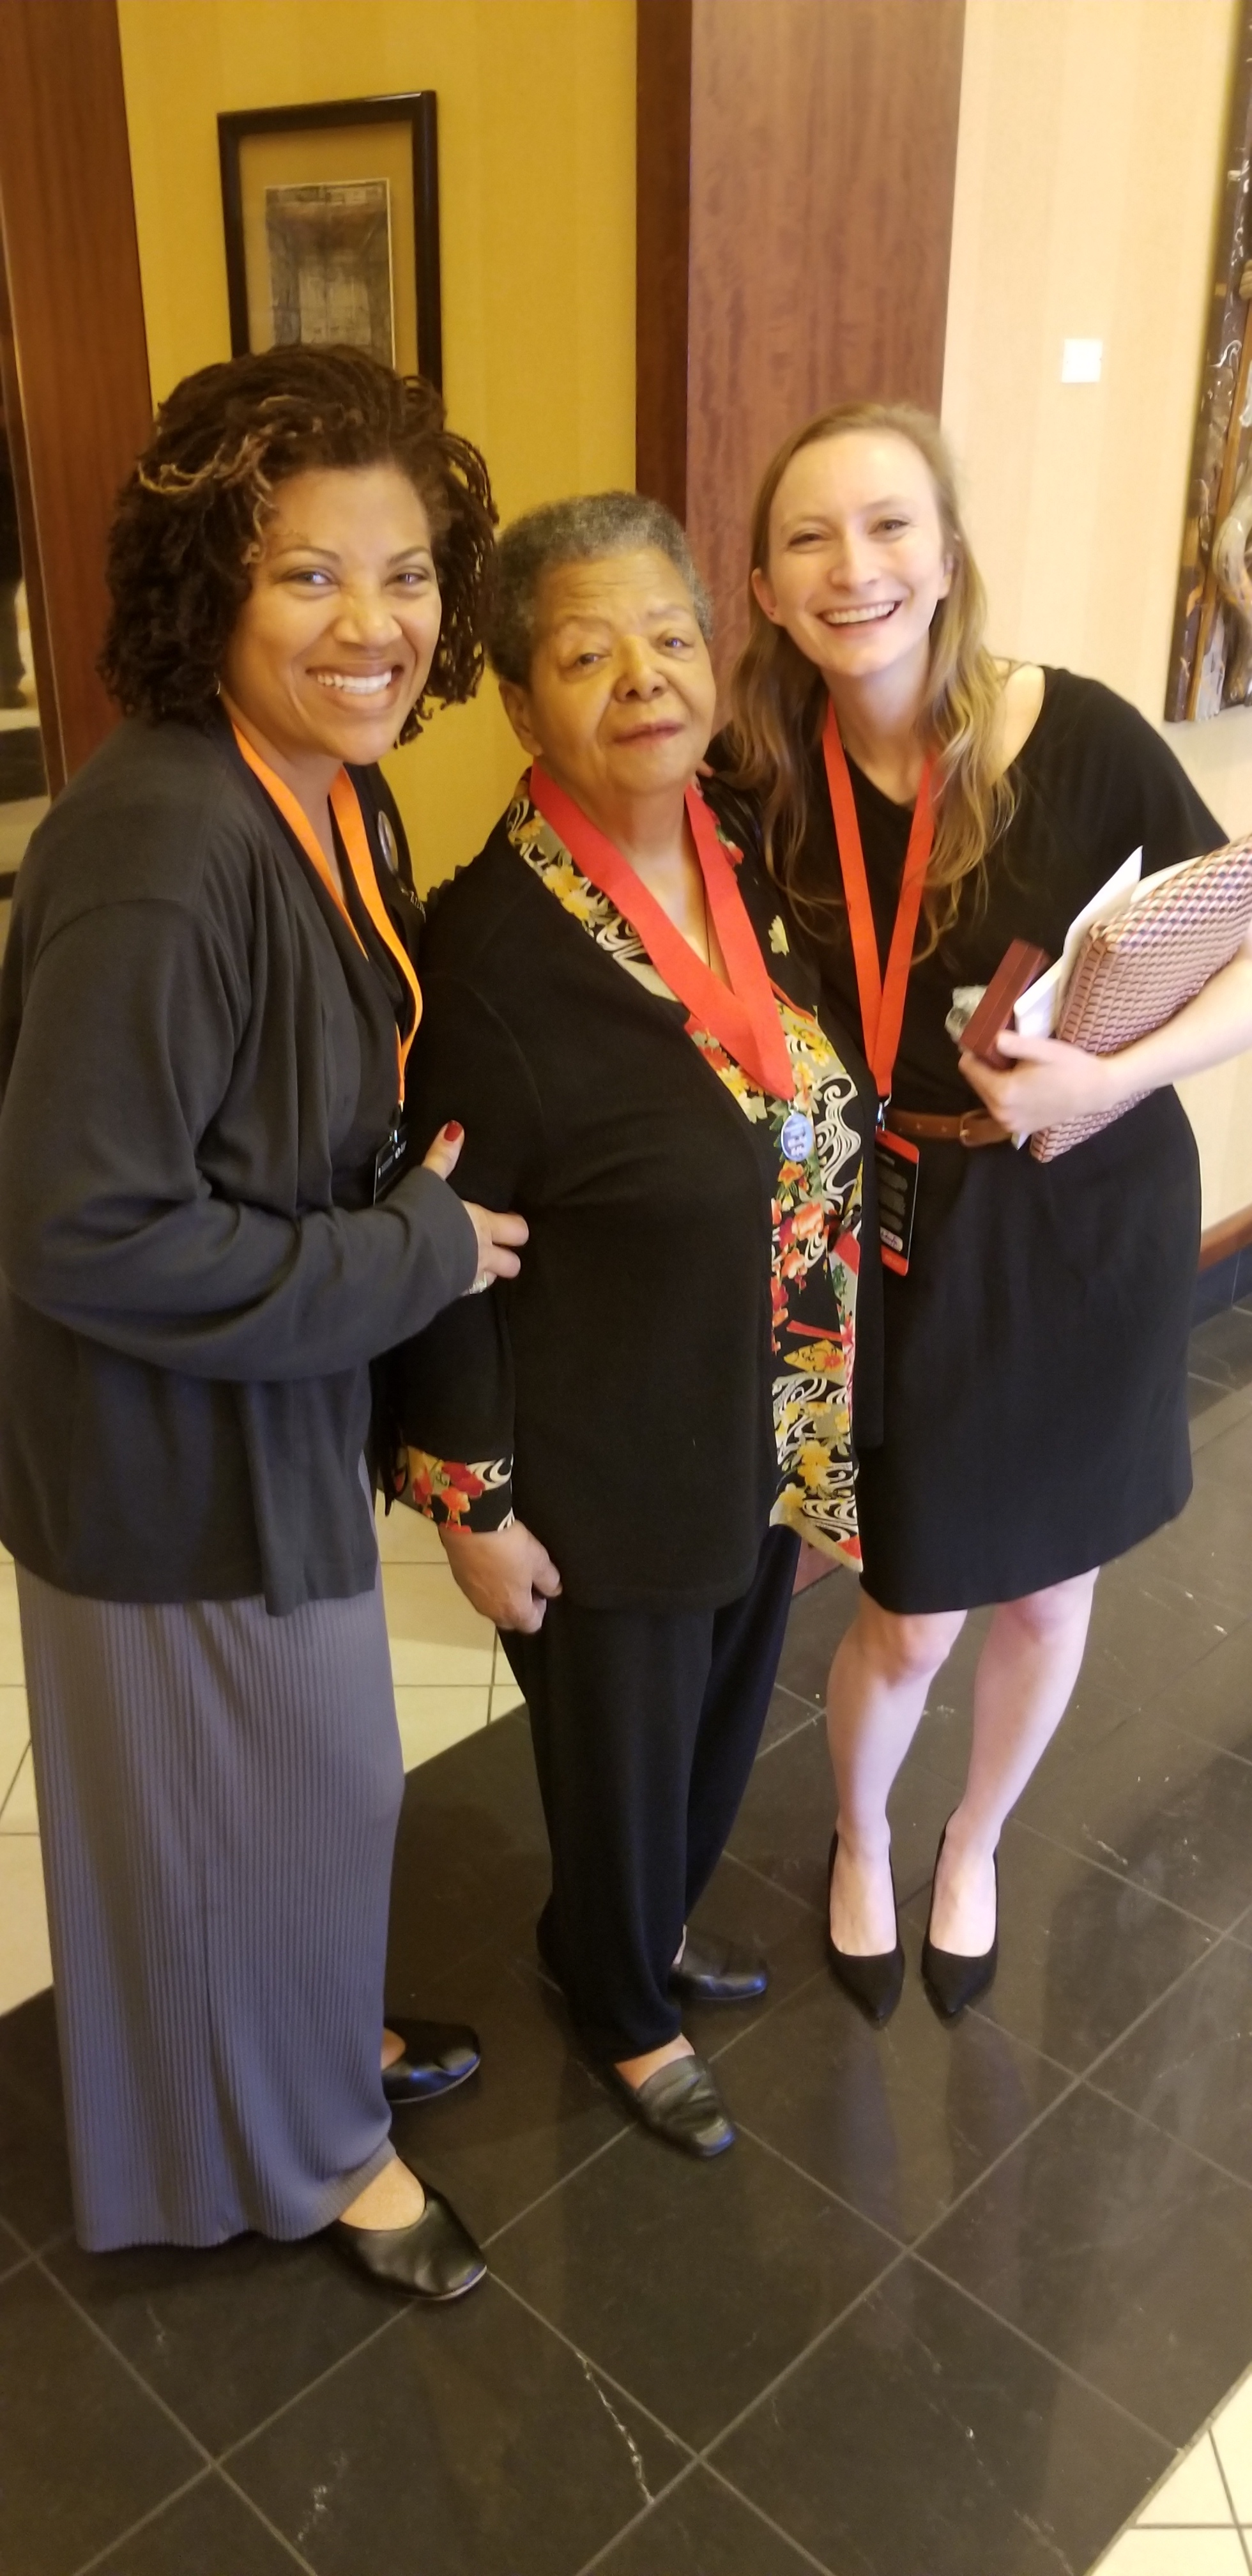 Elizabeth Eckford and Eurydice Stanley posing with fan